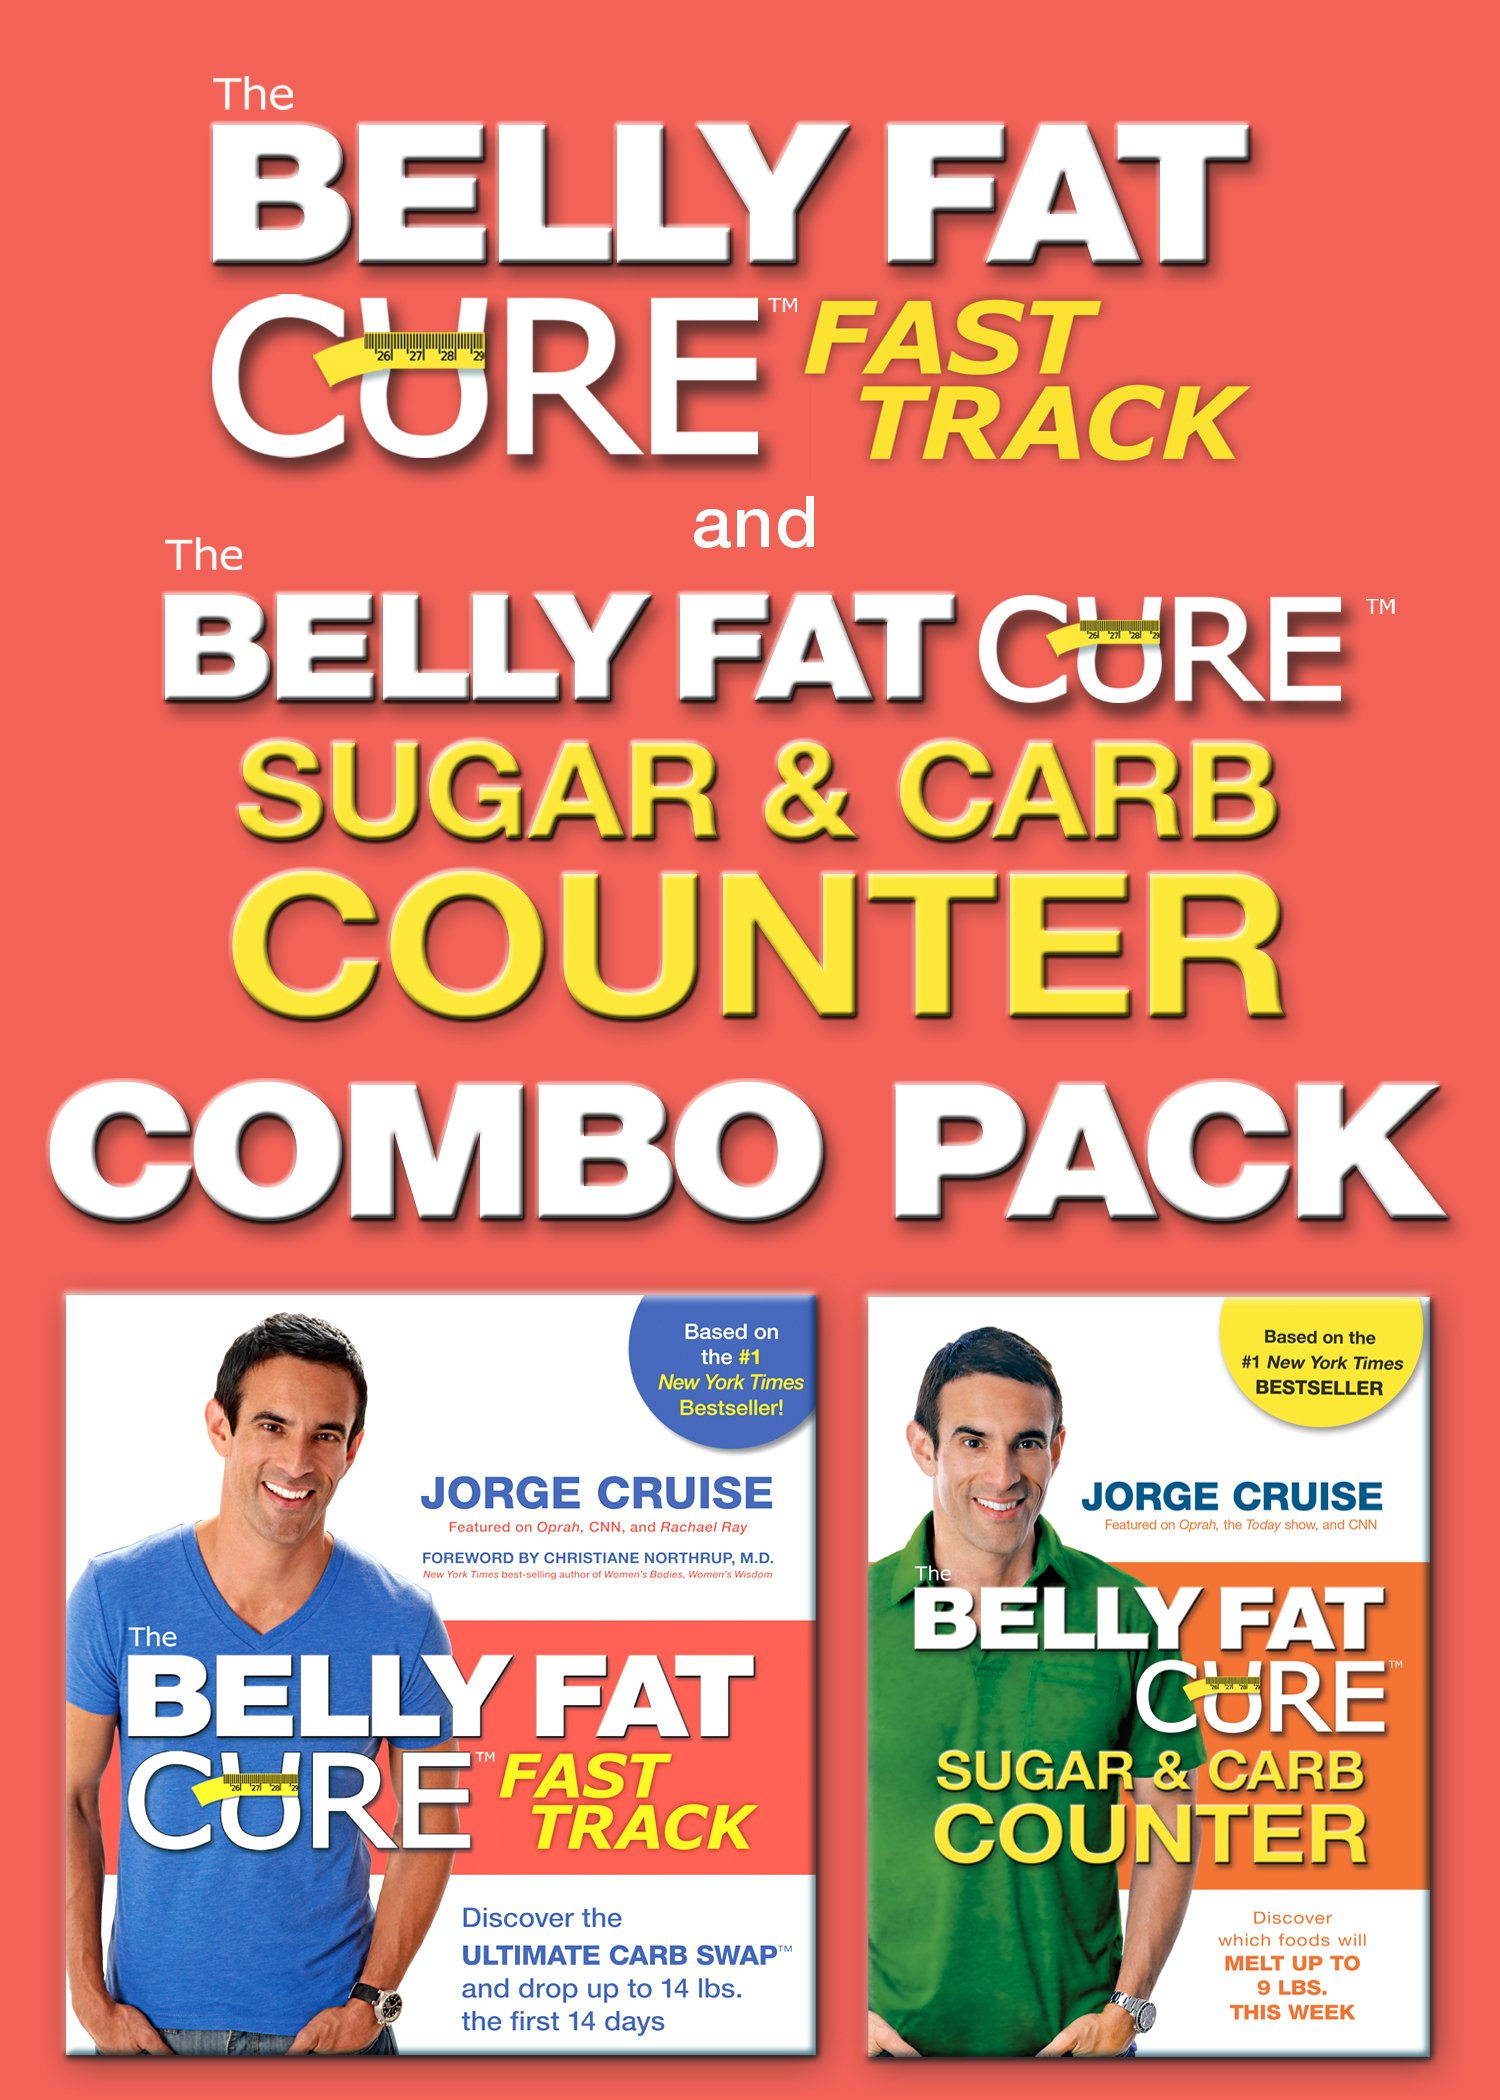 Belly Fat Cure Track Counter product image